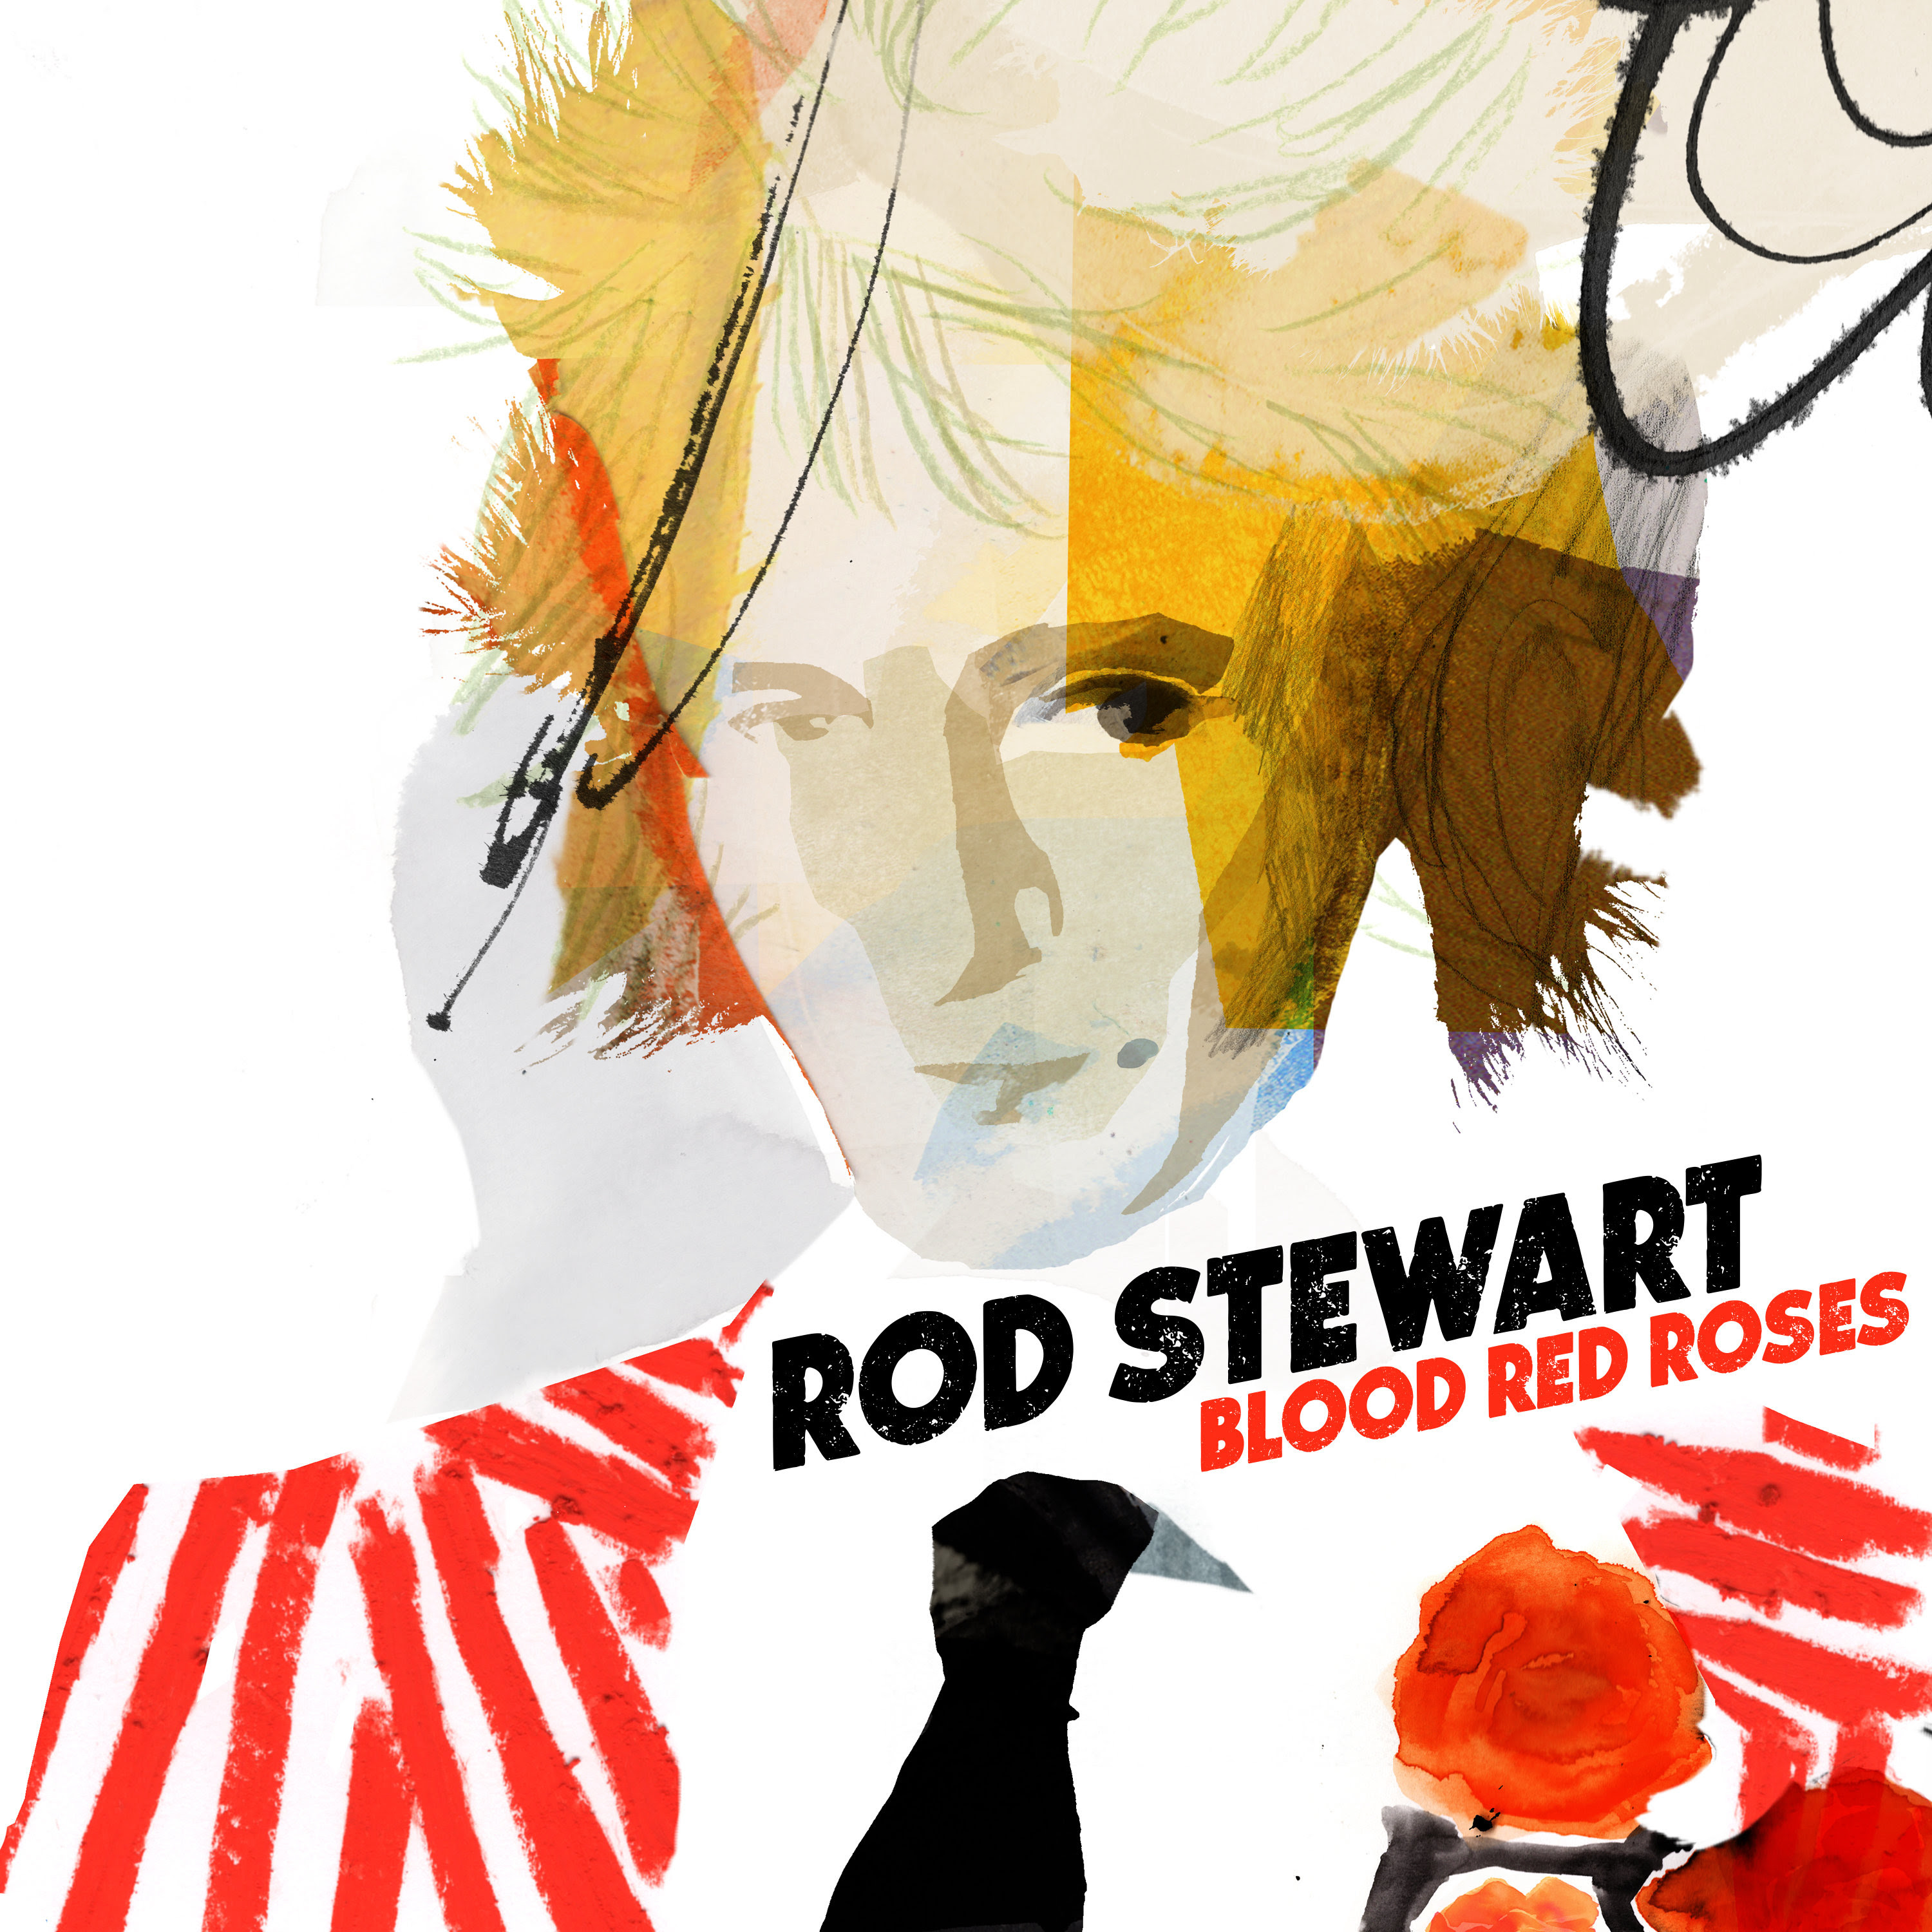 ROD STEWART'S NEW ALBUM BLOOD RED ROSES OUT NOW